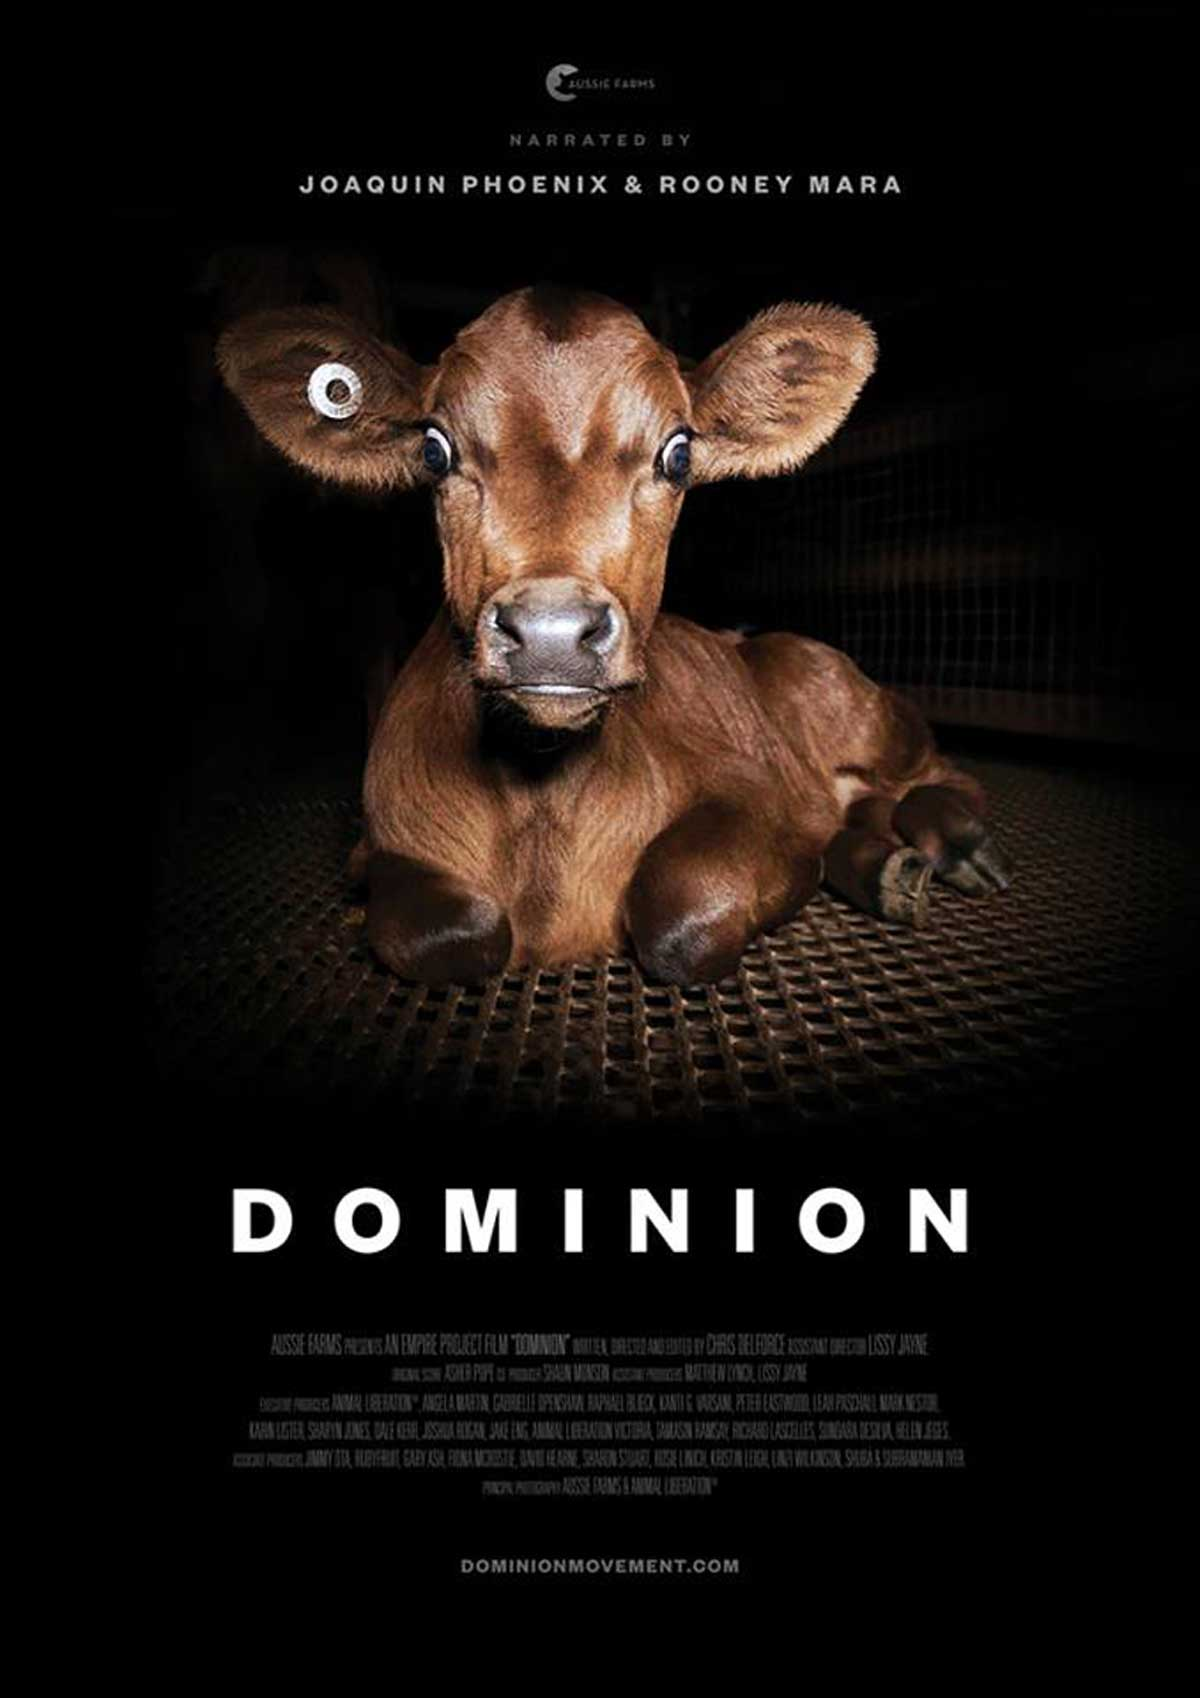 Dominion Film Documentario Completo